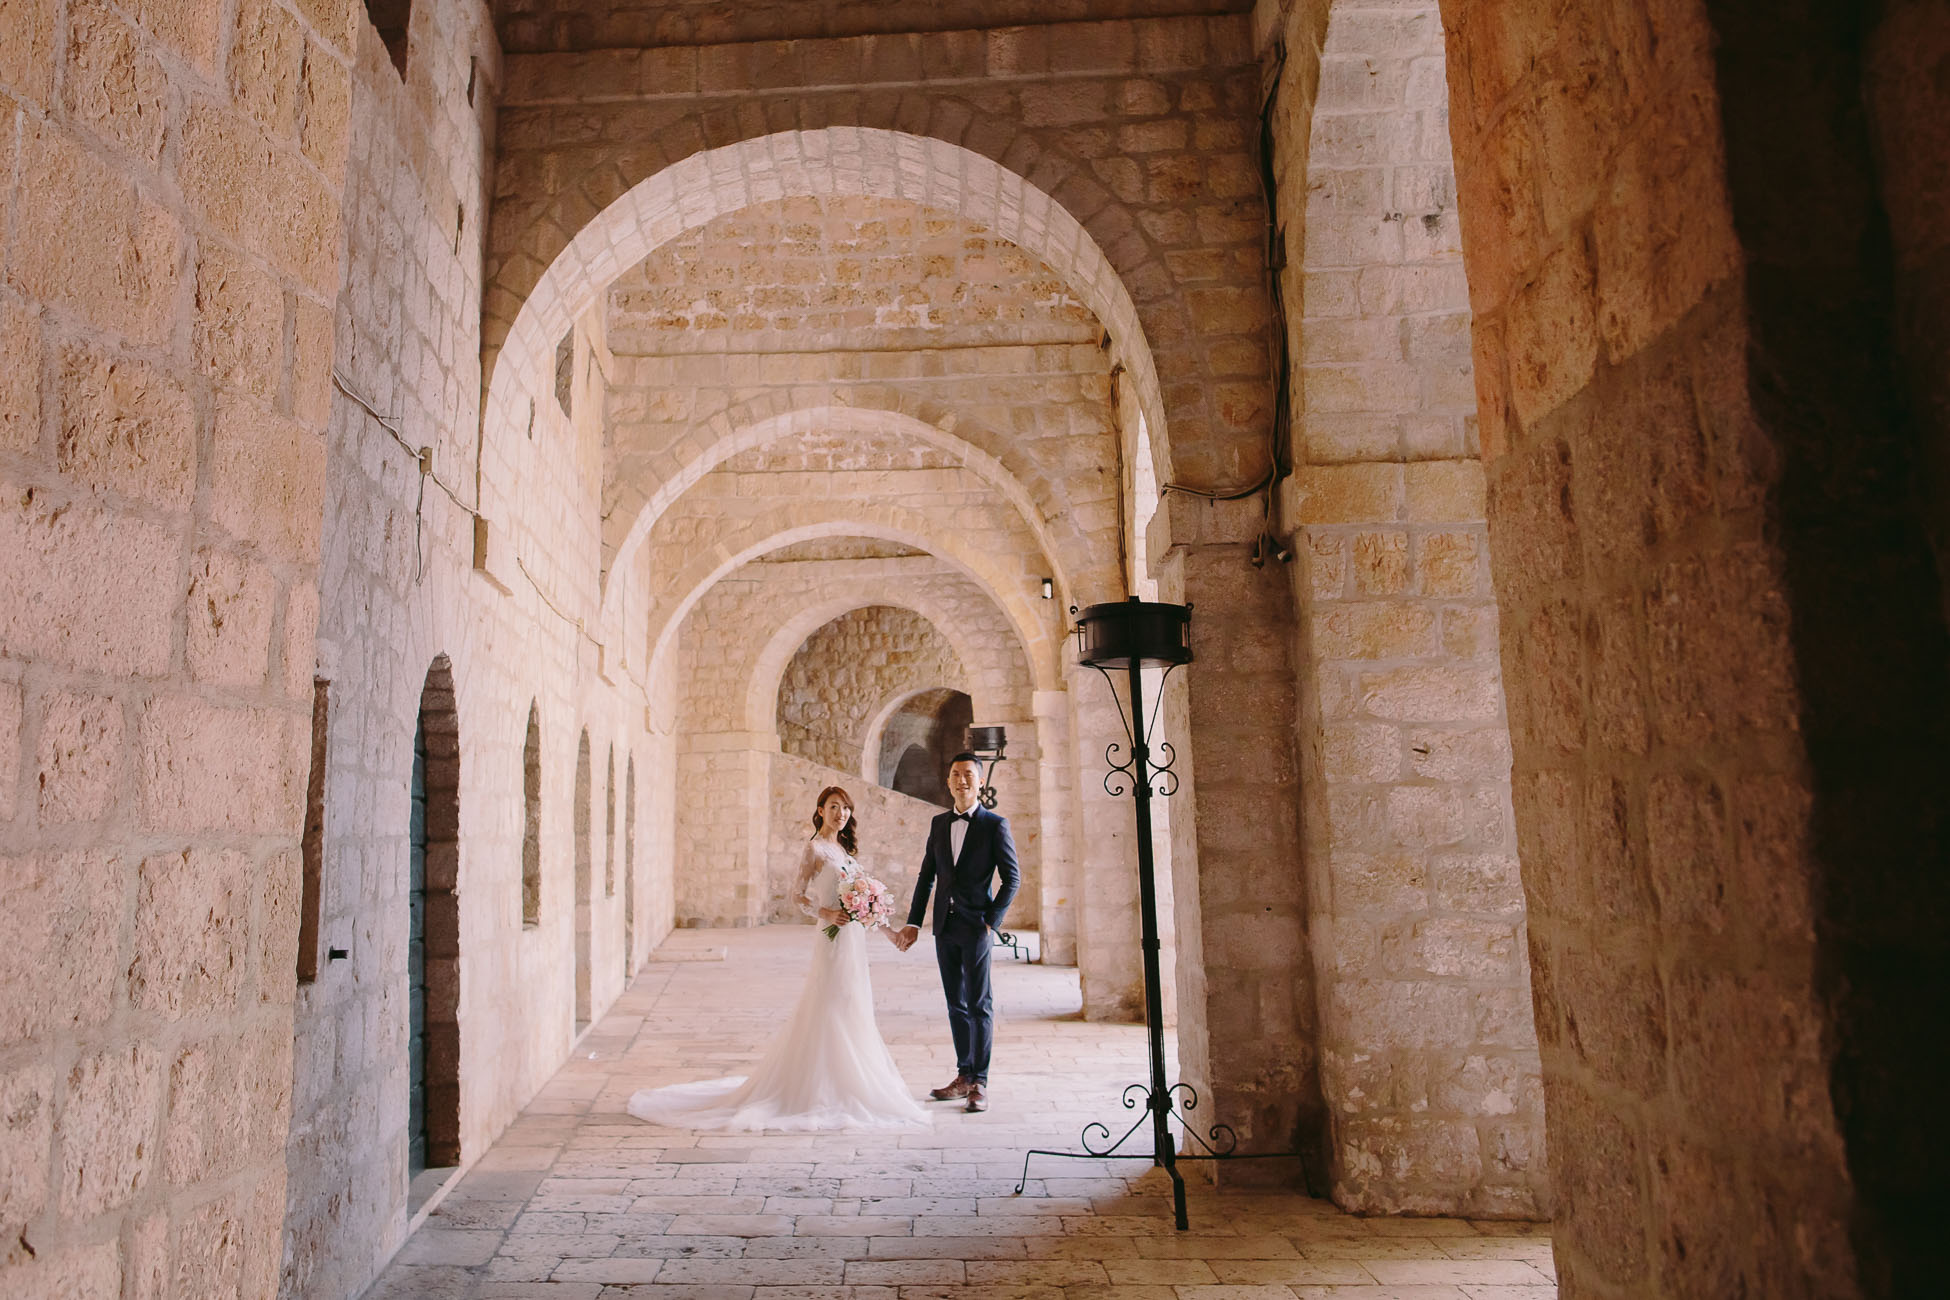 Prewedding photoshoot in Dubrovnik Croatia